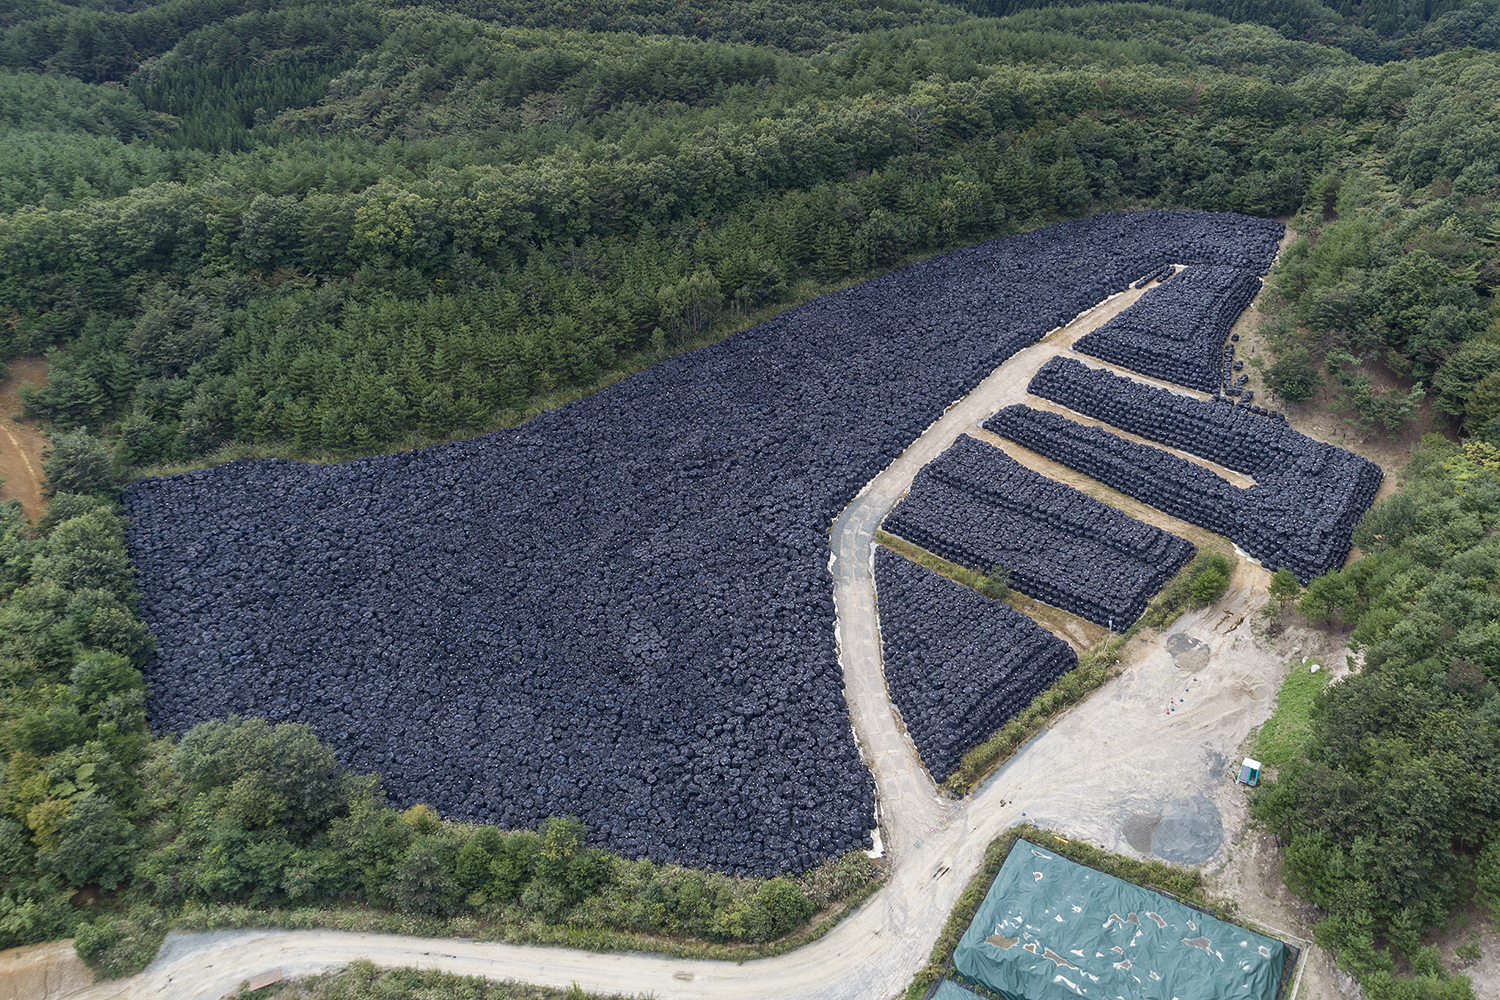 Aerial view of nuclear waste storage area in the mountainous forests of Iitate, Fukushima prefecture in Japan. Adopting a return to normal policy, the Japanese government undertook an unprecedented decontamination program for areas of Fukushima contaminated by the tripe reactor meltdown in March 2011. Fukushima prefecture is 70 percent mountainous forest which has not and cannot be decontaminated, with decontamination efforts focused along roads and in towns, farmland and in narrow areas around people's houses. Even so, the result has been that the Japanese authorities have produced a nuclear waste crisis, with over 13 million cubic meters of waste located in 147,000 locations (as of July 2017). The Japanese government is determined to force people back to their homes despite the on-going radiation risks and the vast volumes of nuclear waste.